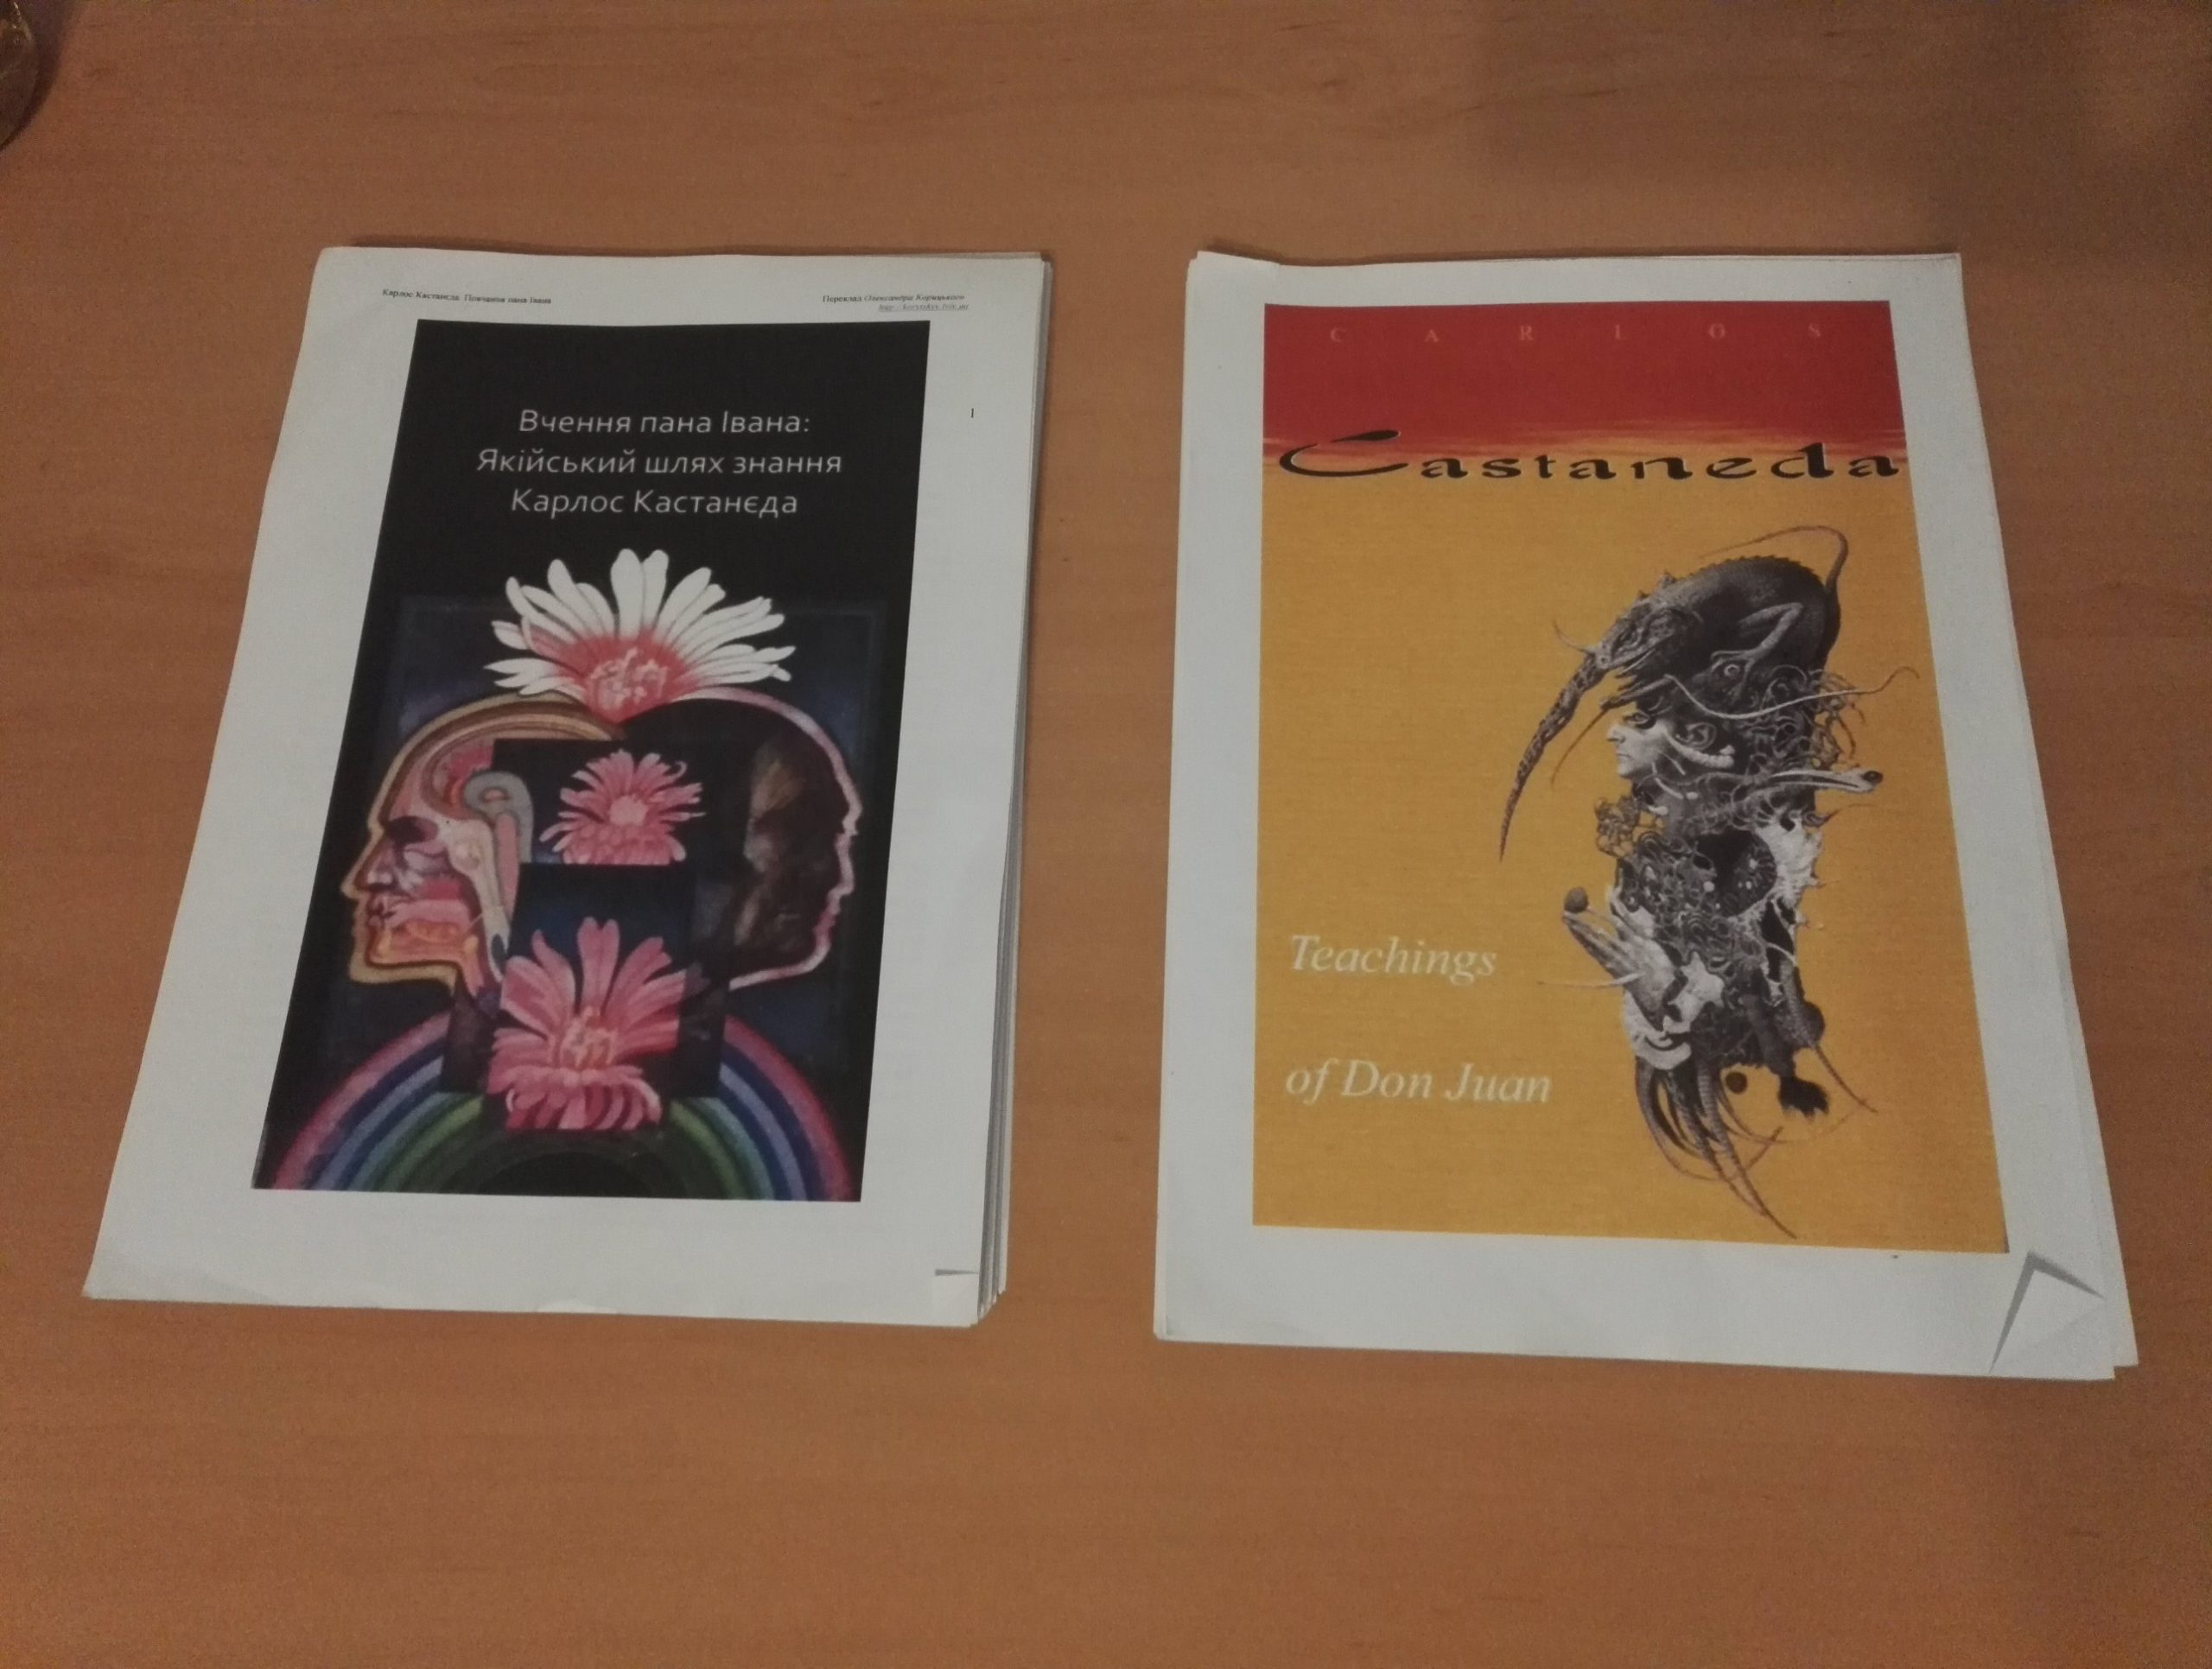 Carlos Castaneda ready to be published in Ukrainian